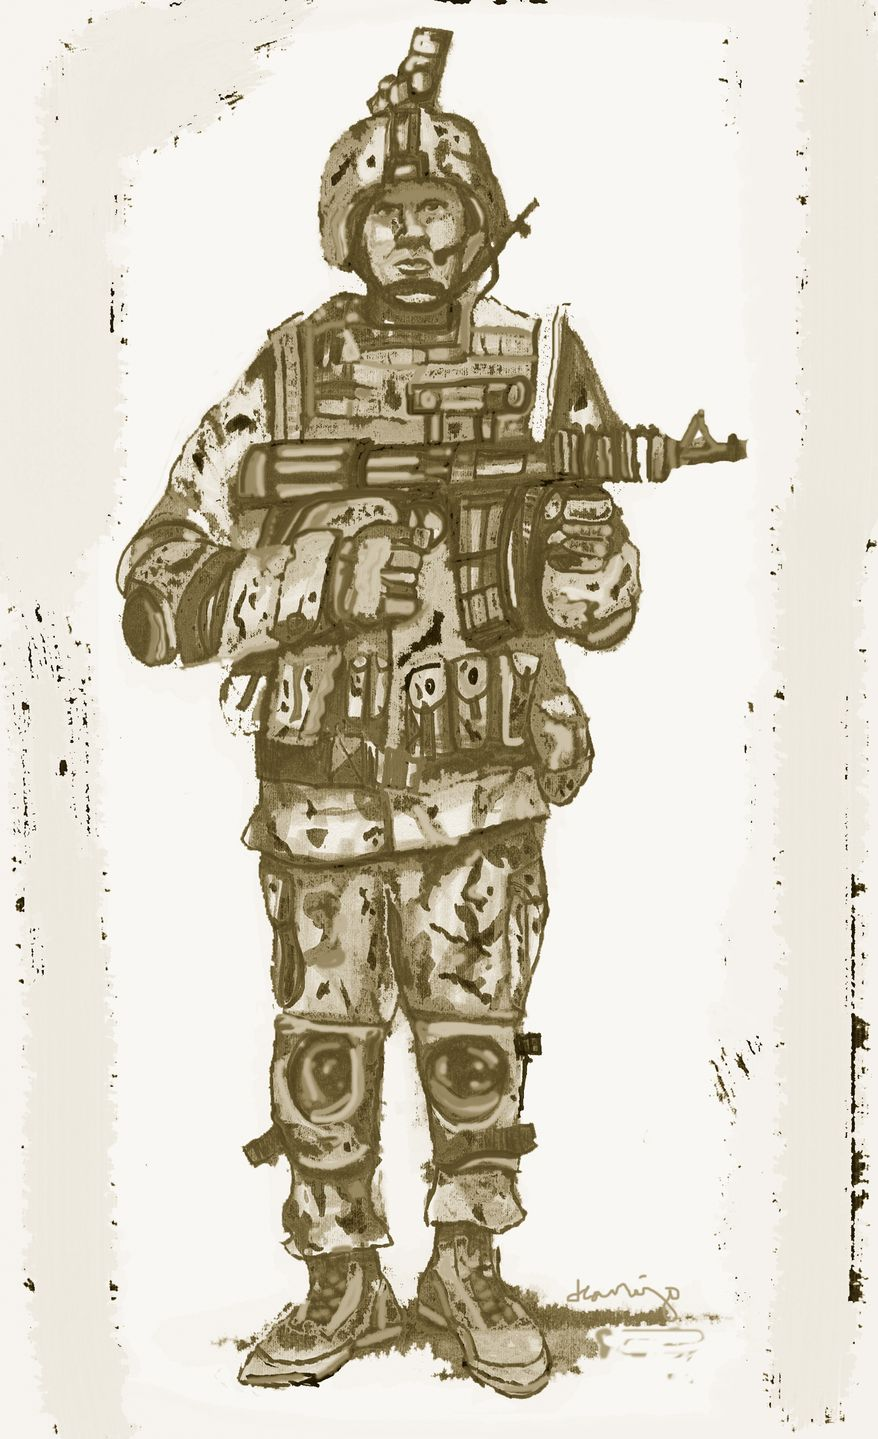 Illustration Brave Soldier by John Camejo for The Washington Times